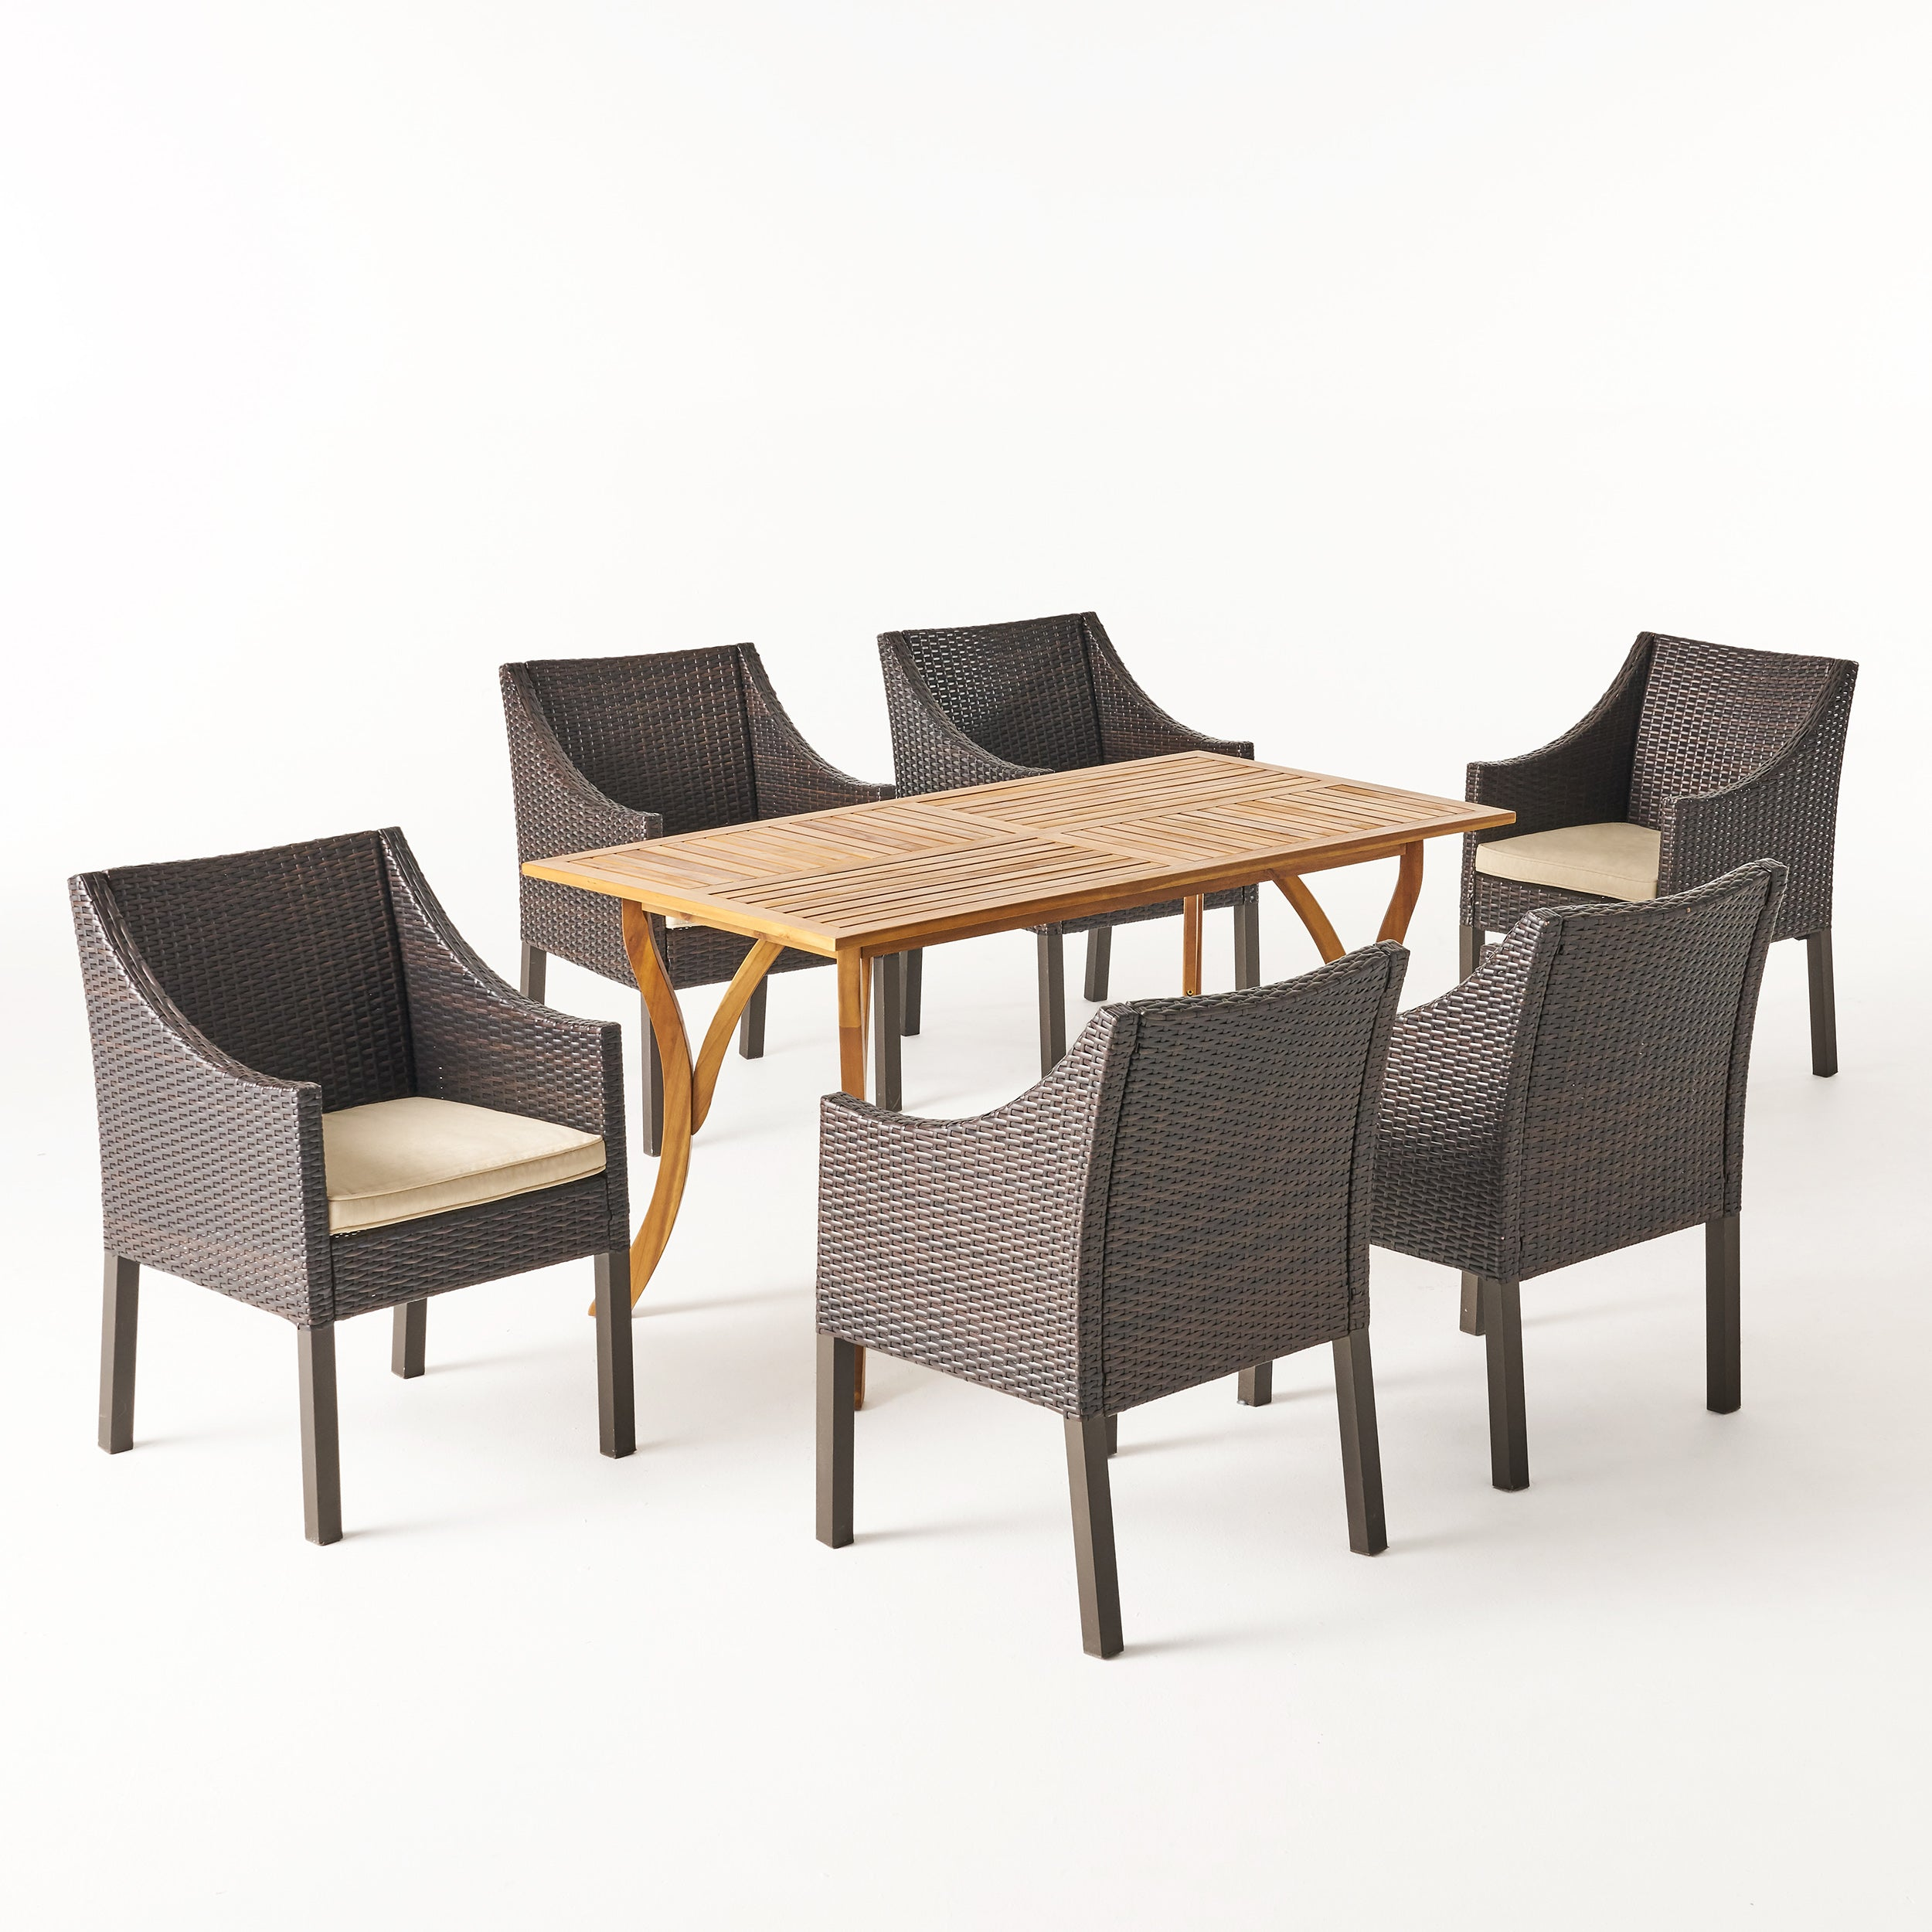 Abel Outdoor 7 Piece Acacia Wood Wicker Dining Set with Cushions Teak Finish and Multibrown with Beige